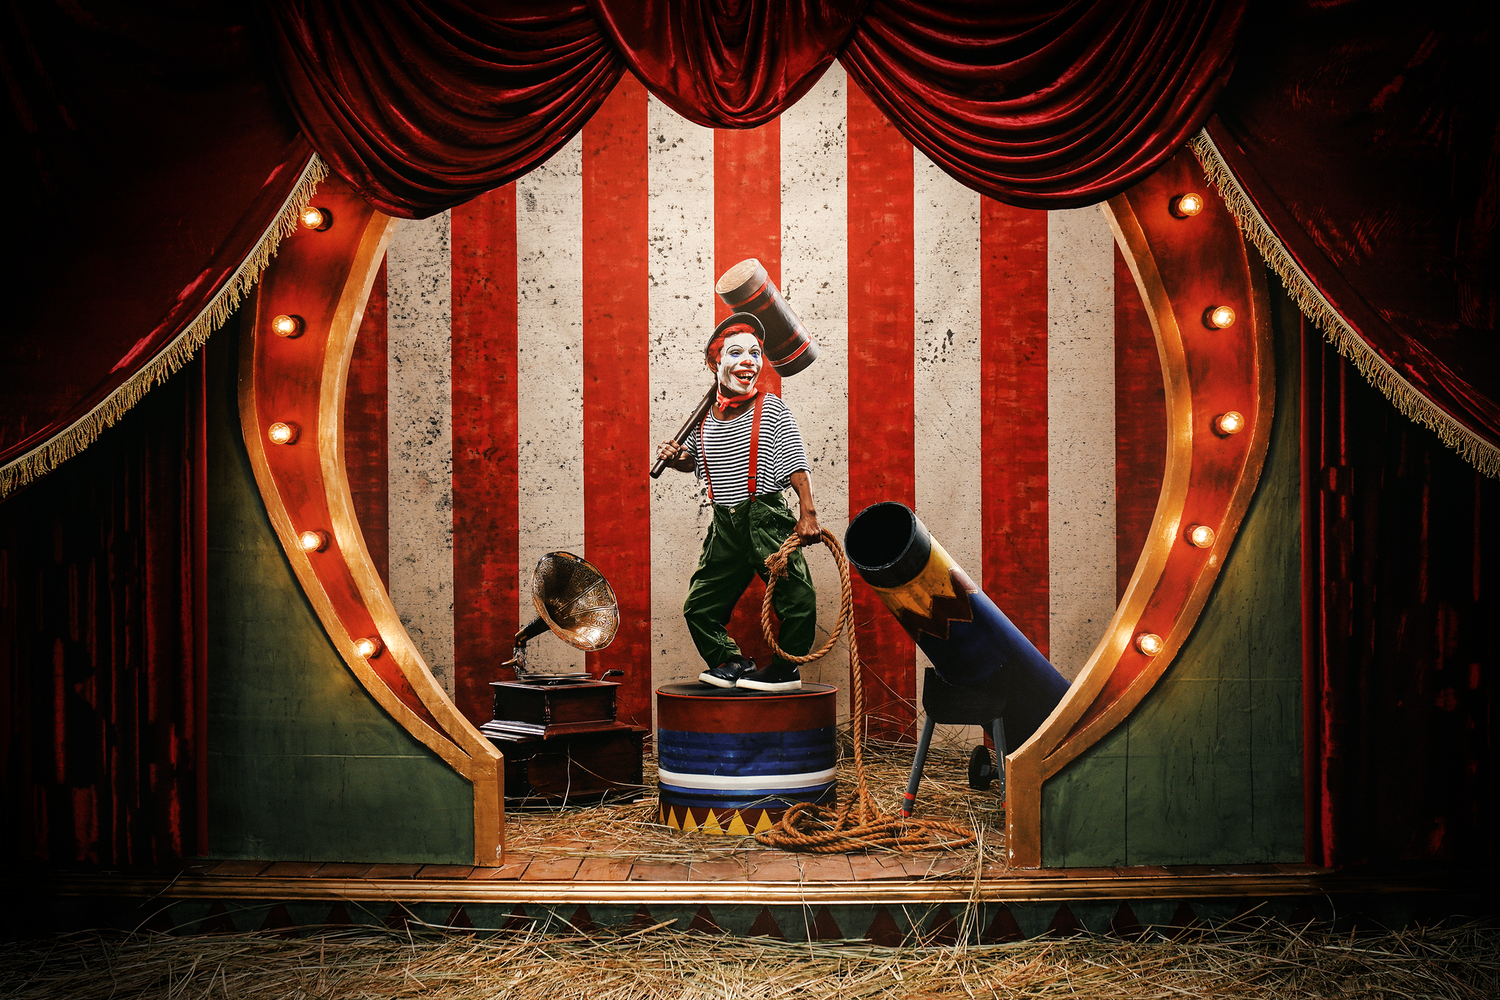 Circus Of Doom - Circus Clown by Jan Gonzales